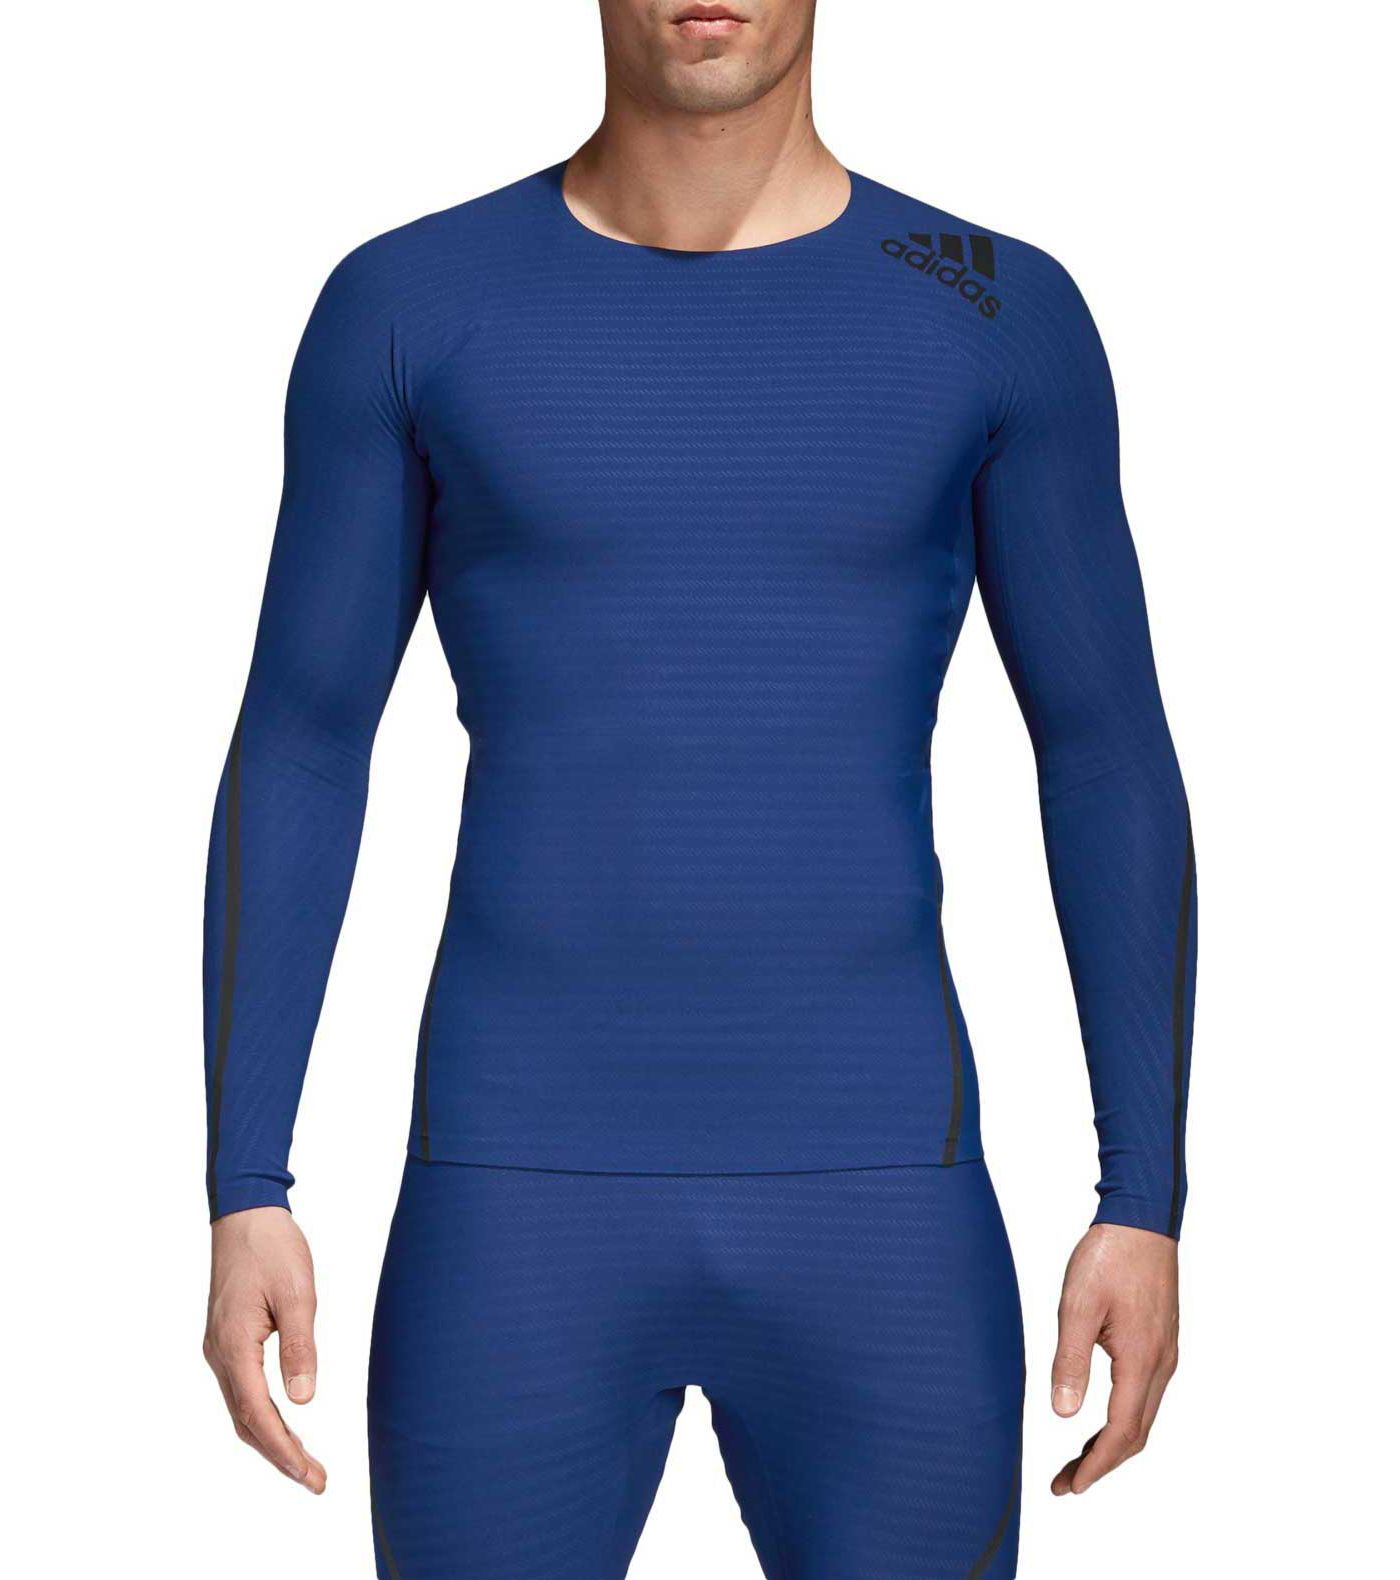 adidas Men's Alphaskin 360 Long Sleeve Shirt